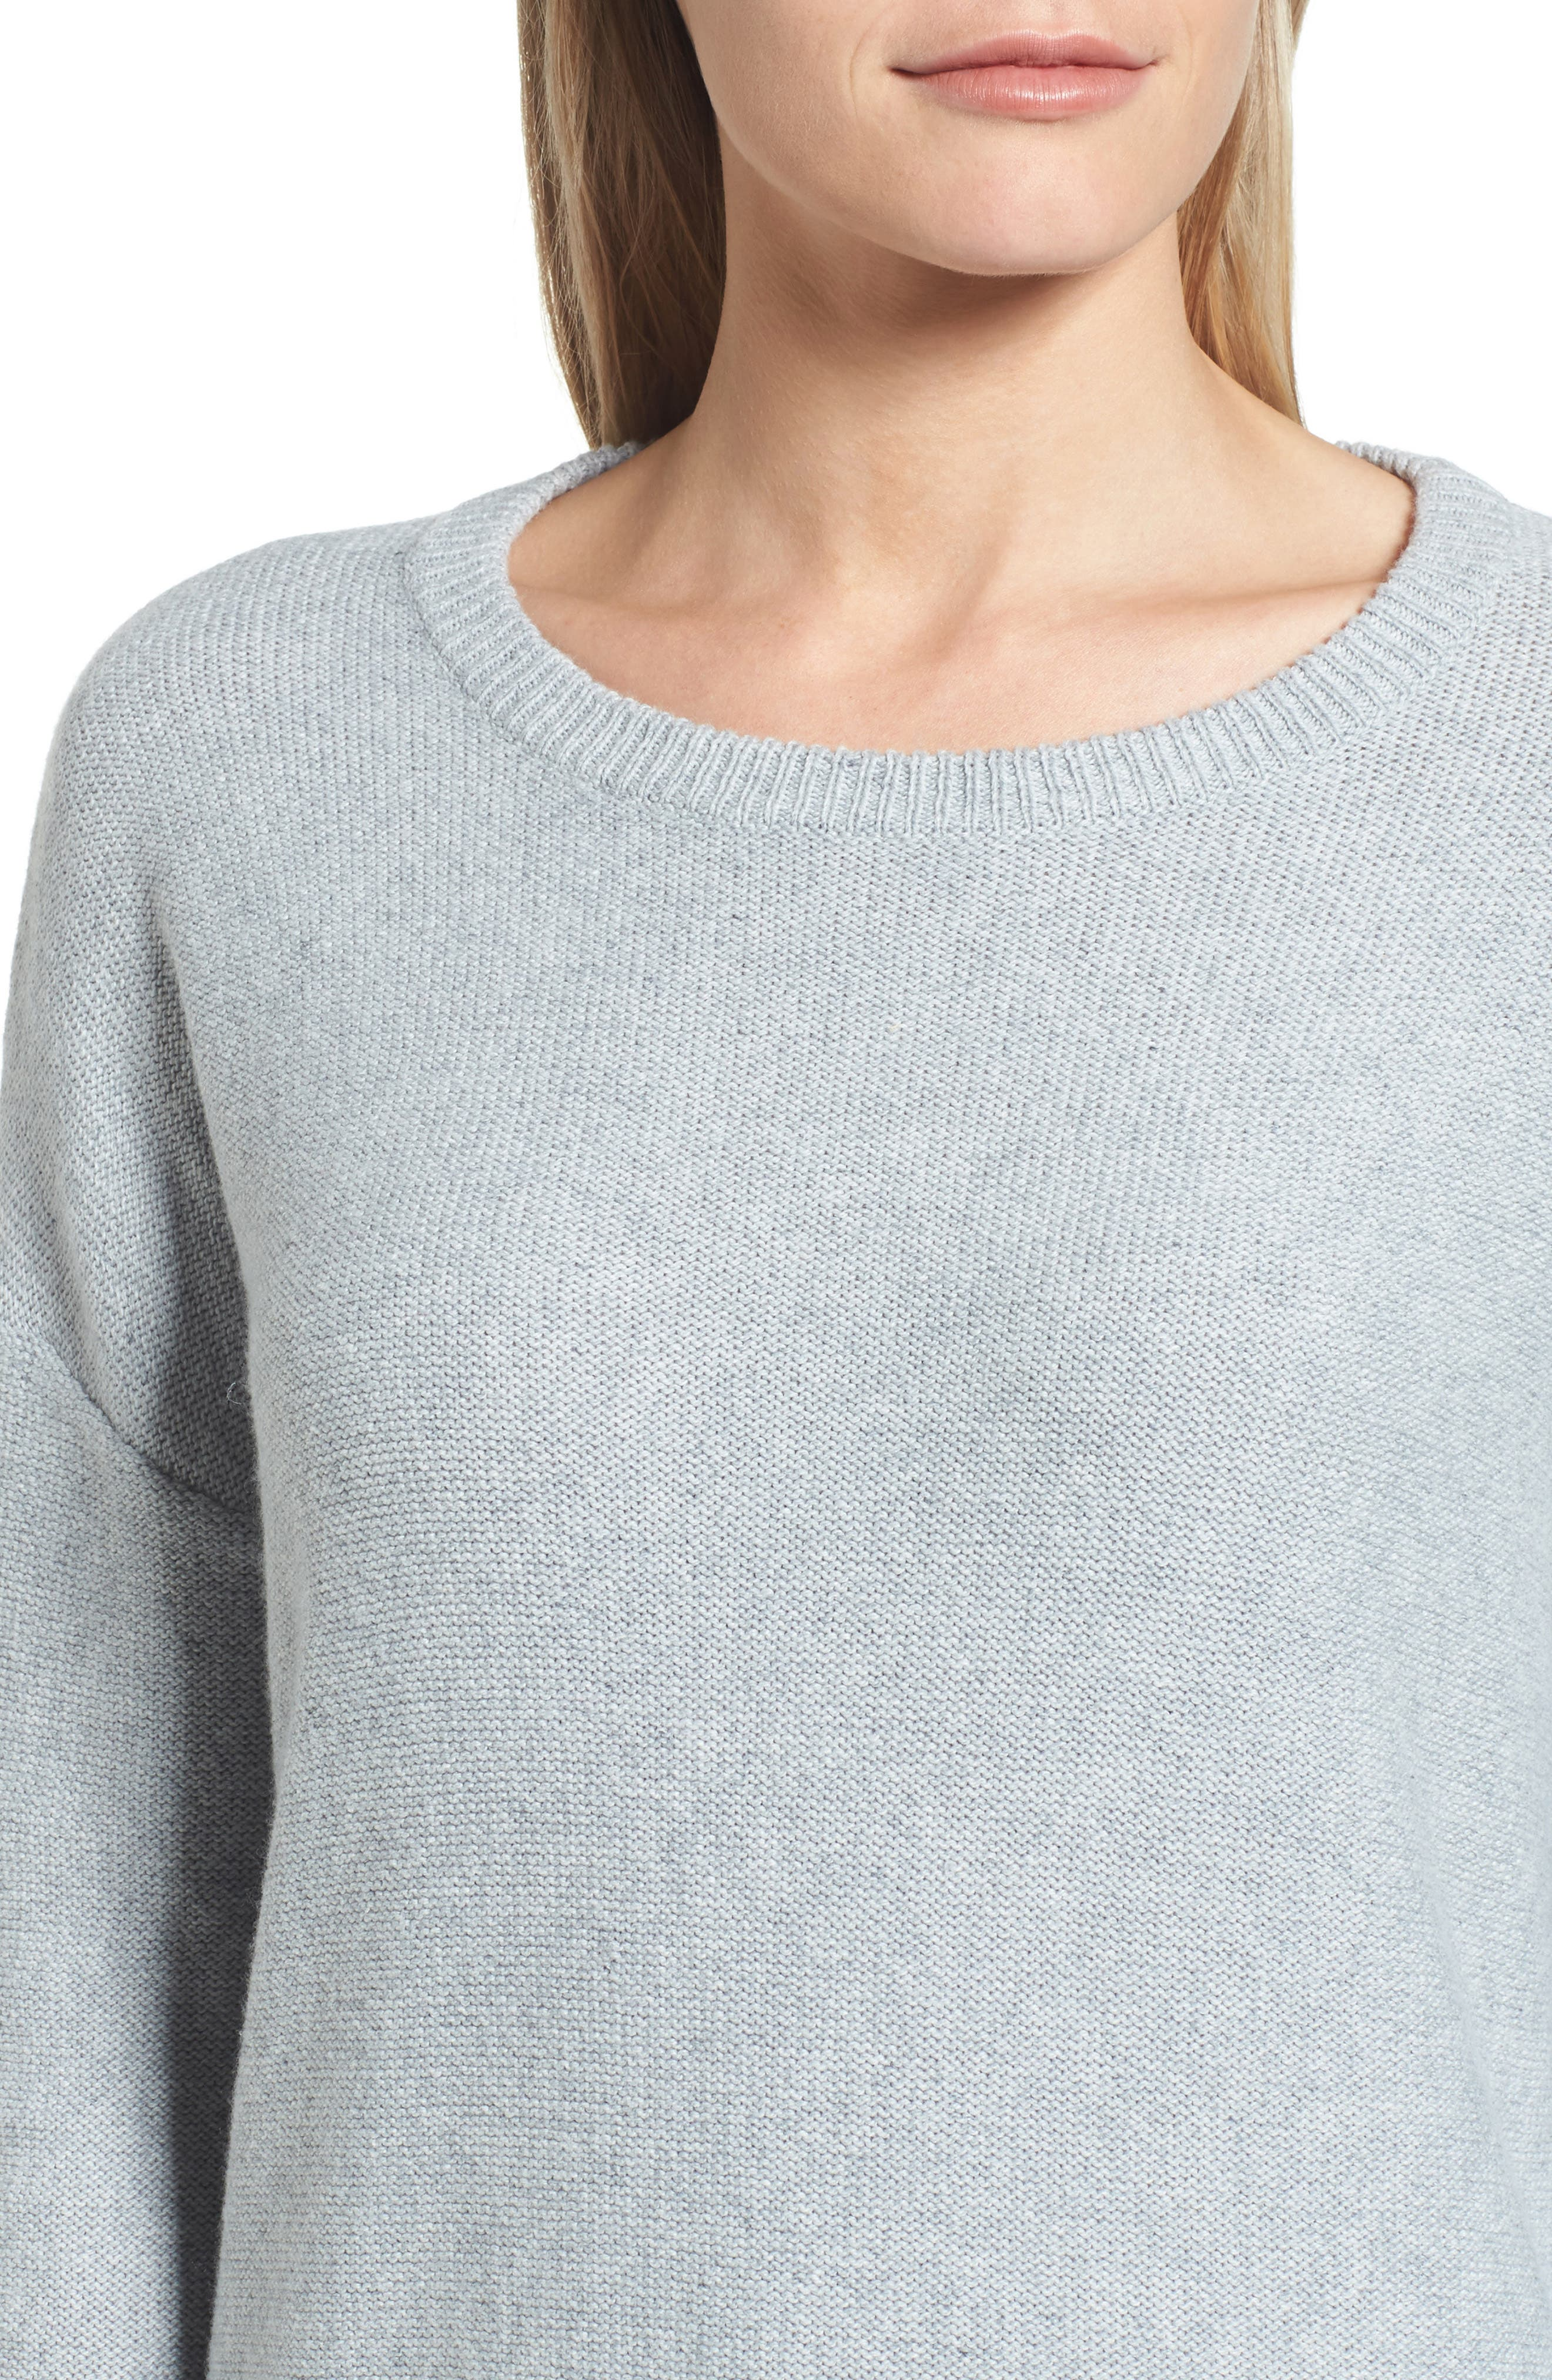 Contrast Cuff Crewneck Sweater,                             Alternate thumbnail 4, color,                             030